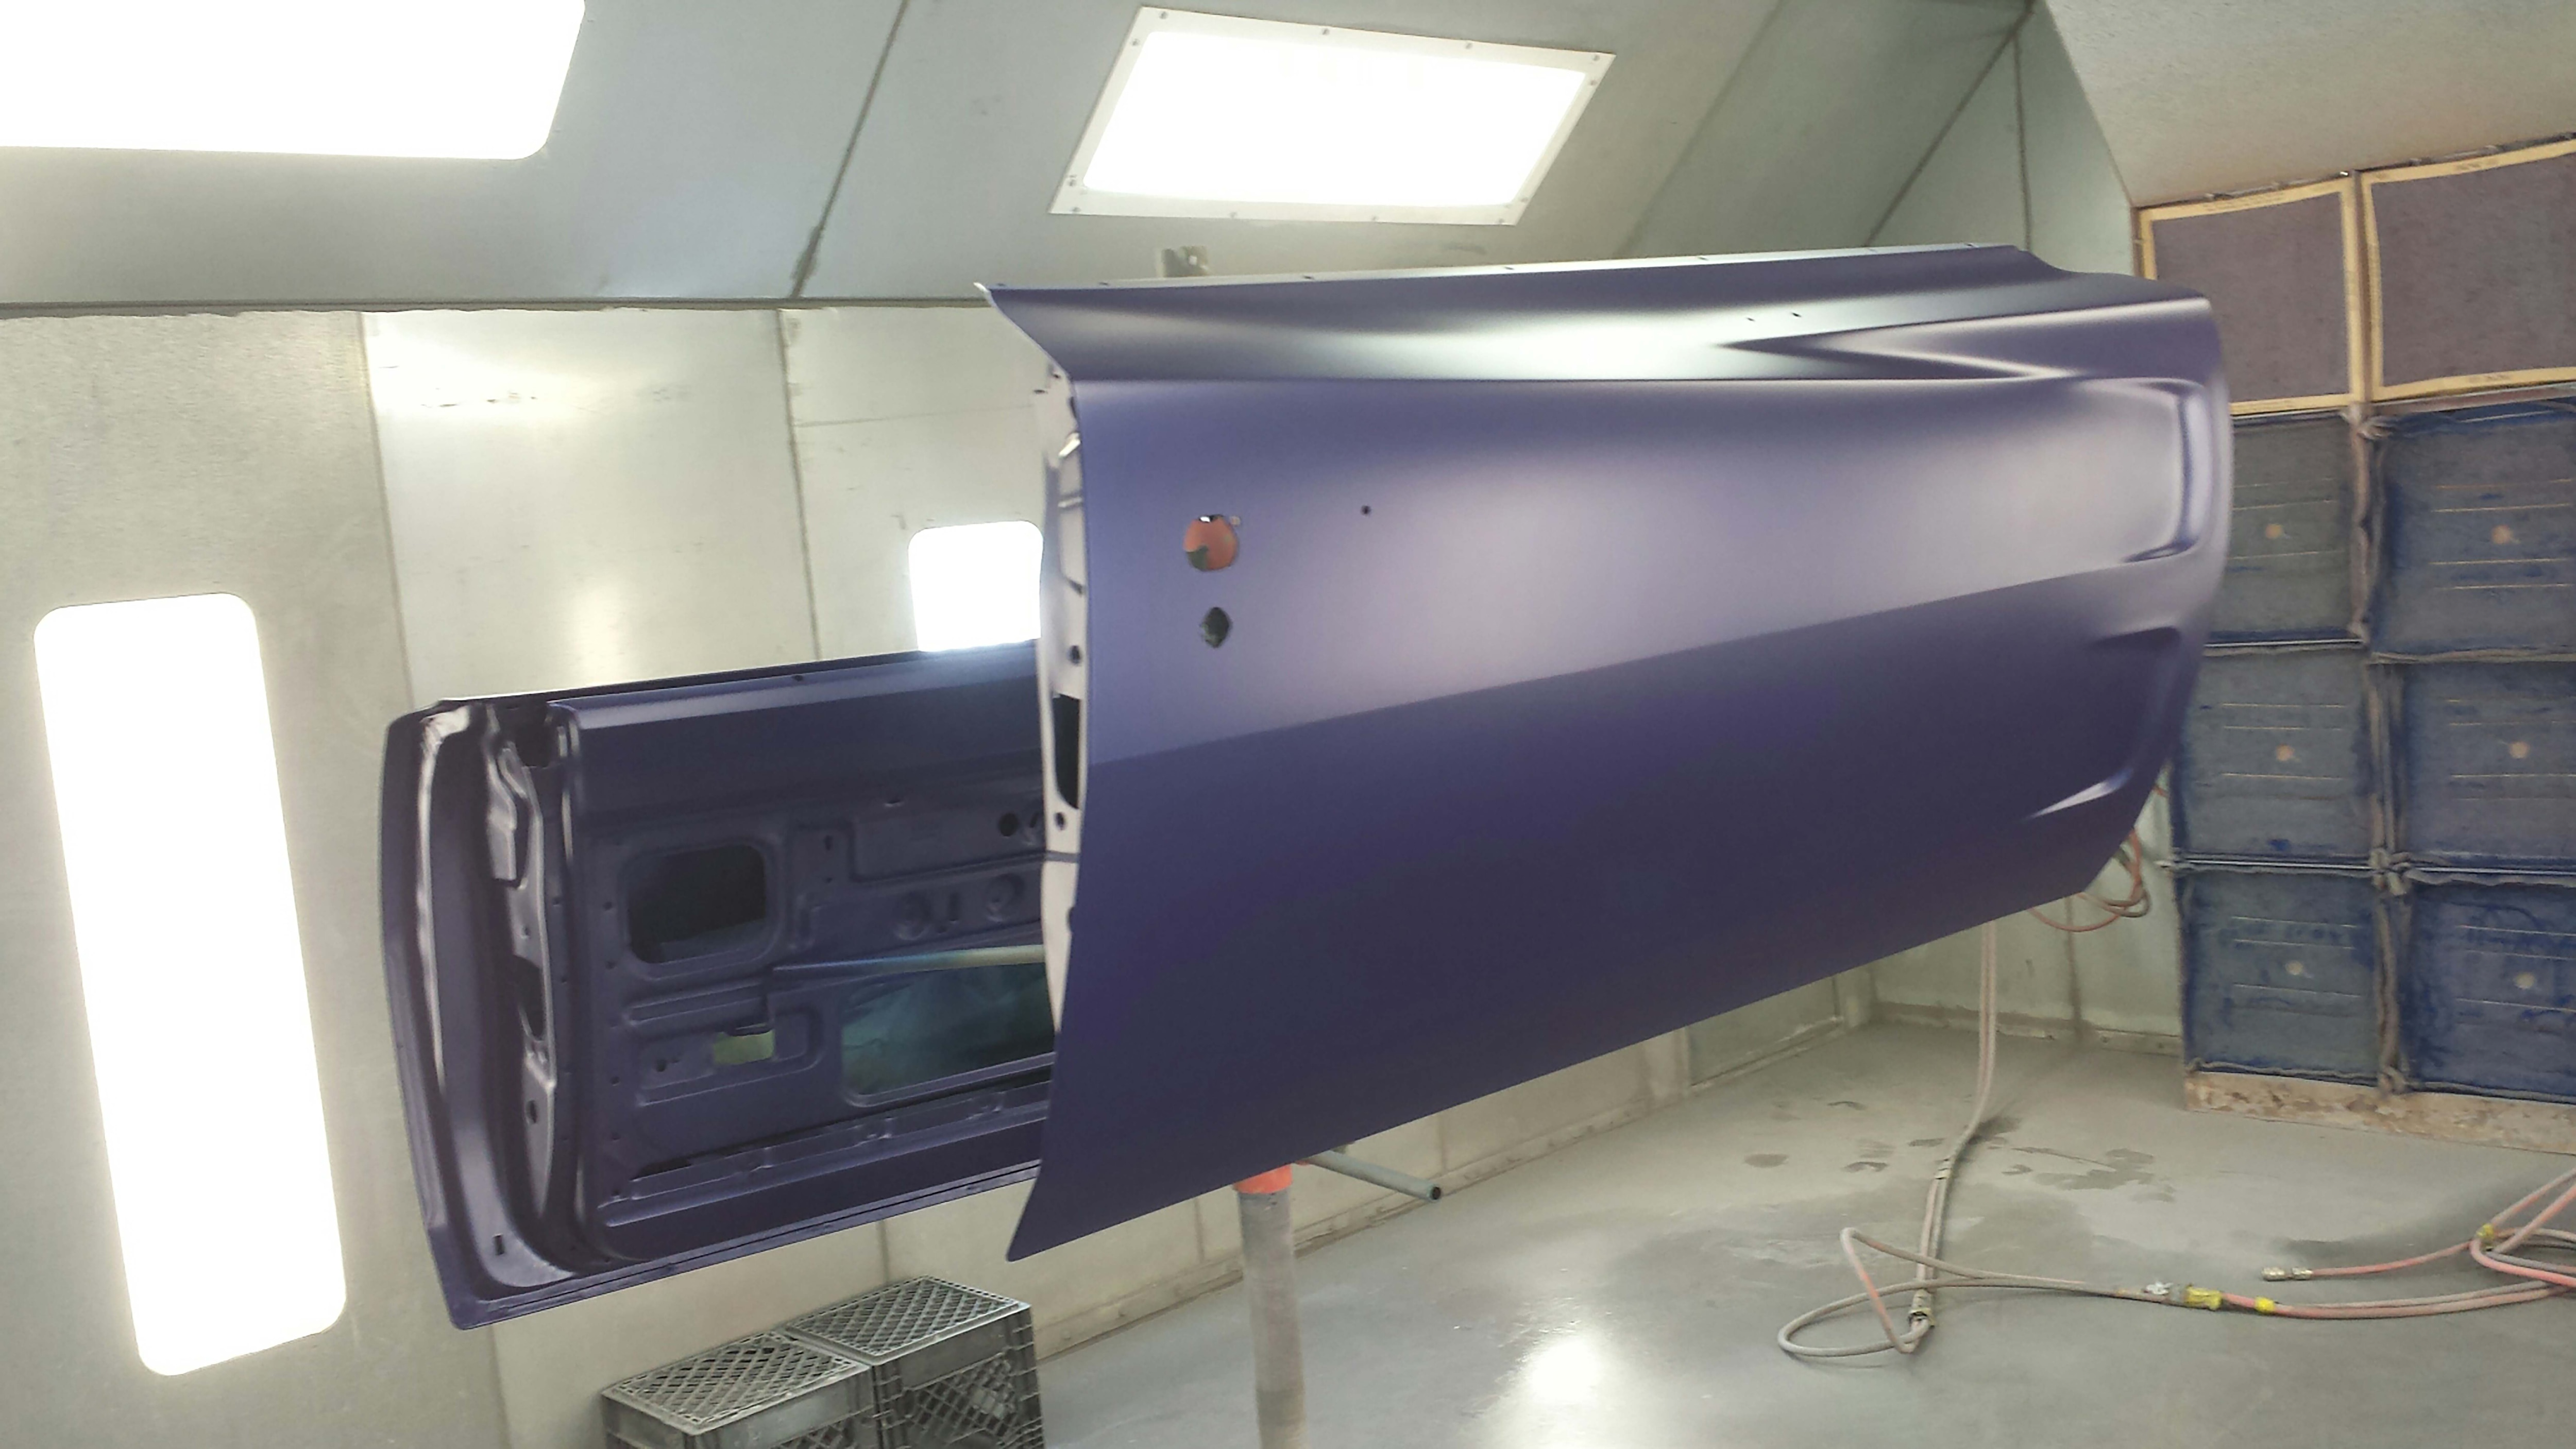 Prior to the clear coat, you can see that the doors look identical to the earlier picture of the whole body.